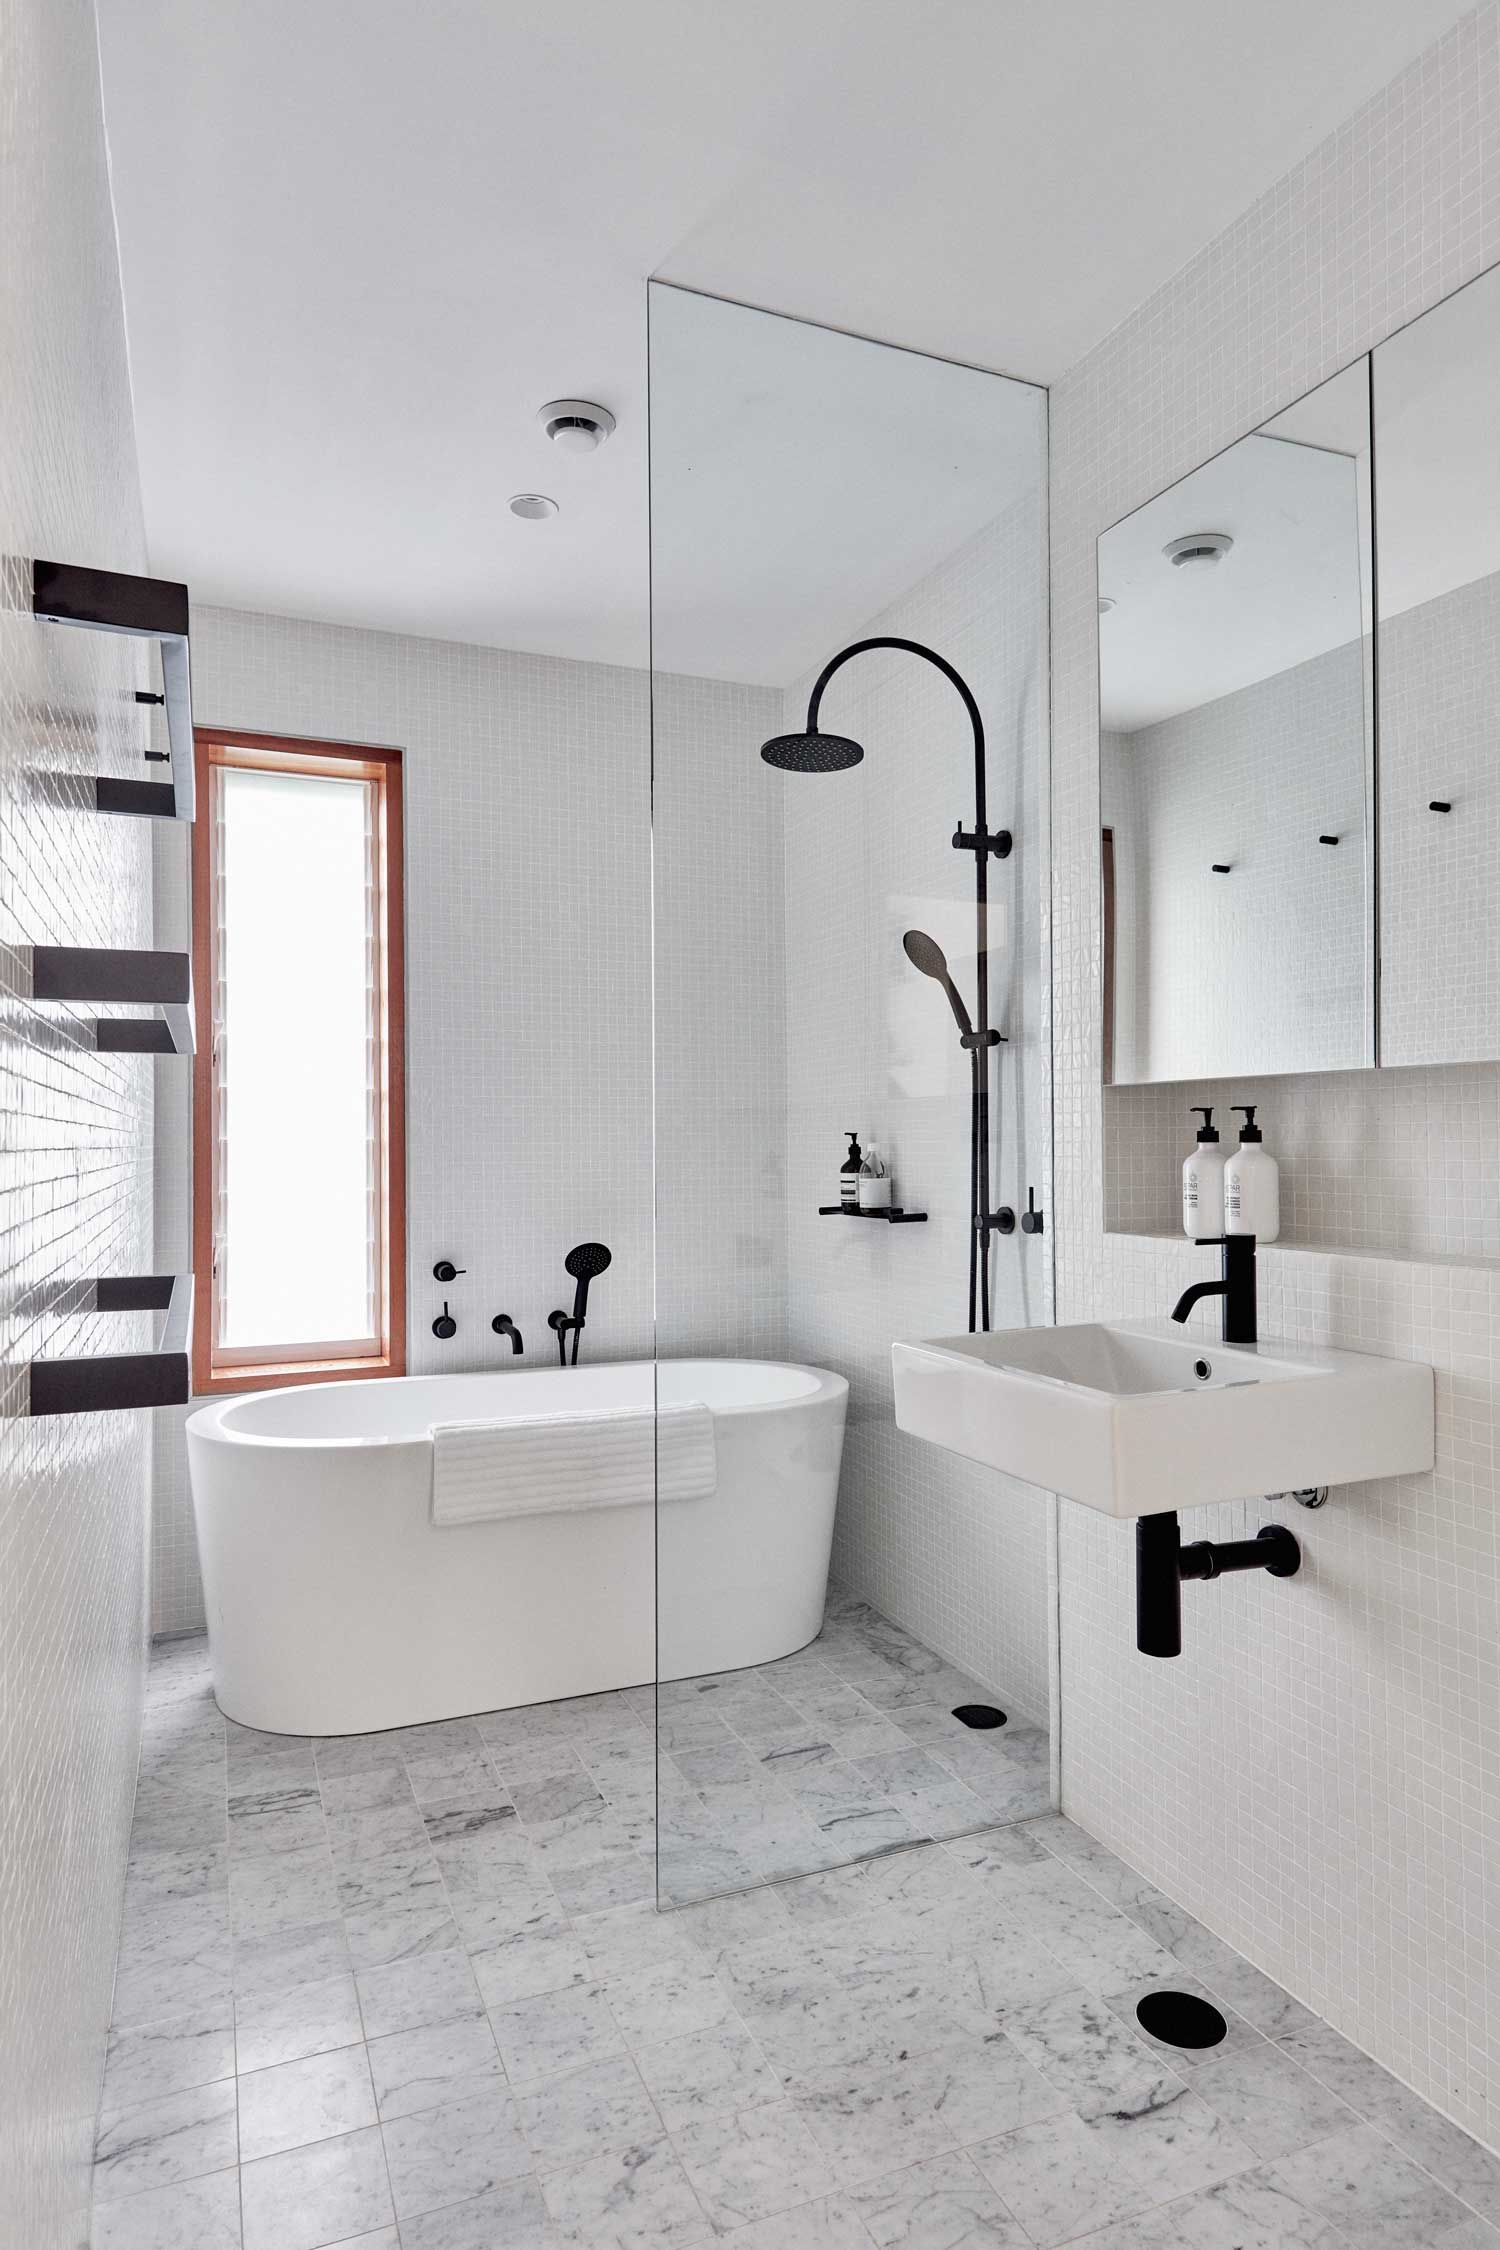 Photo of How to use pendant lights in a bathroom design | Unique Blog